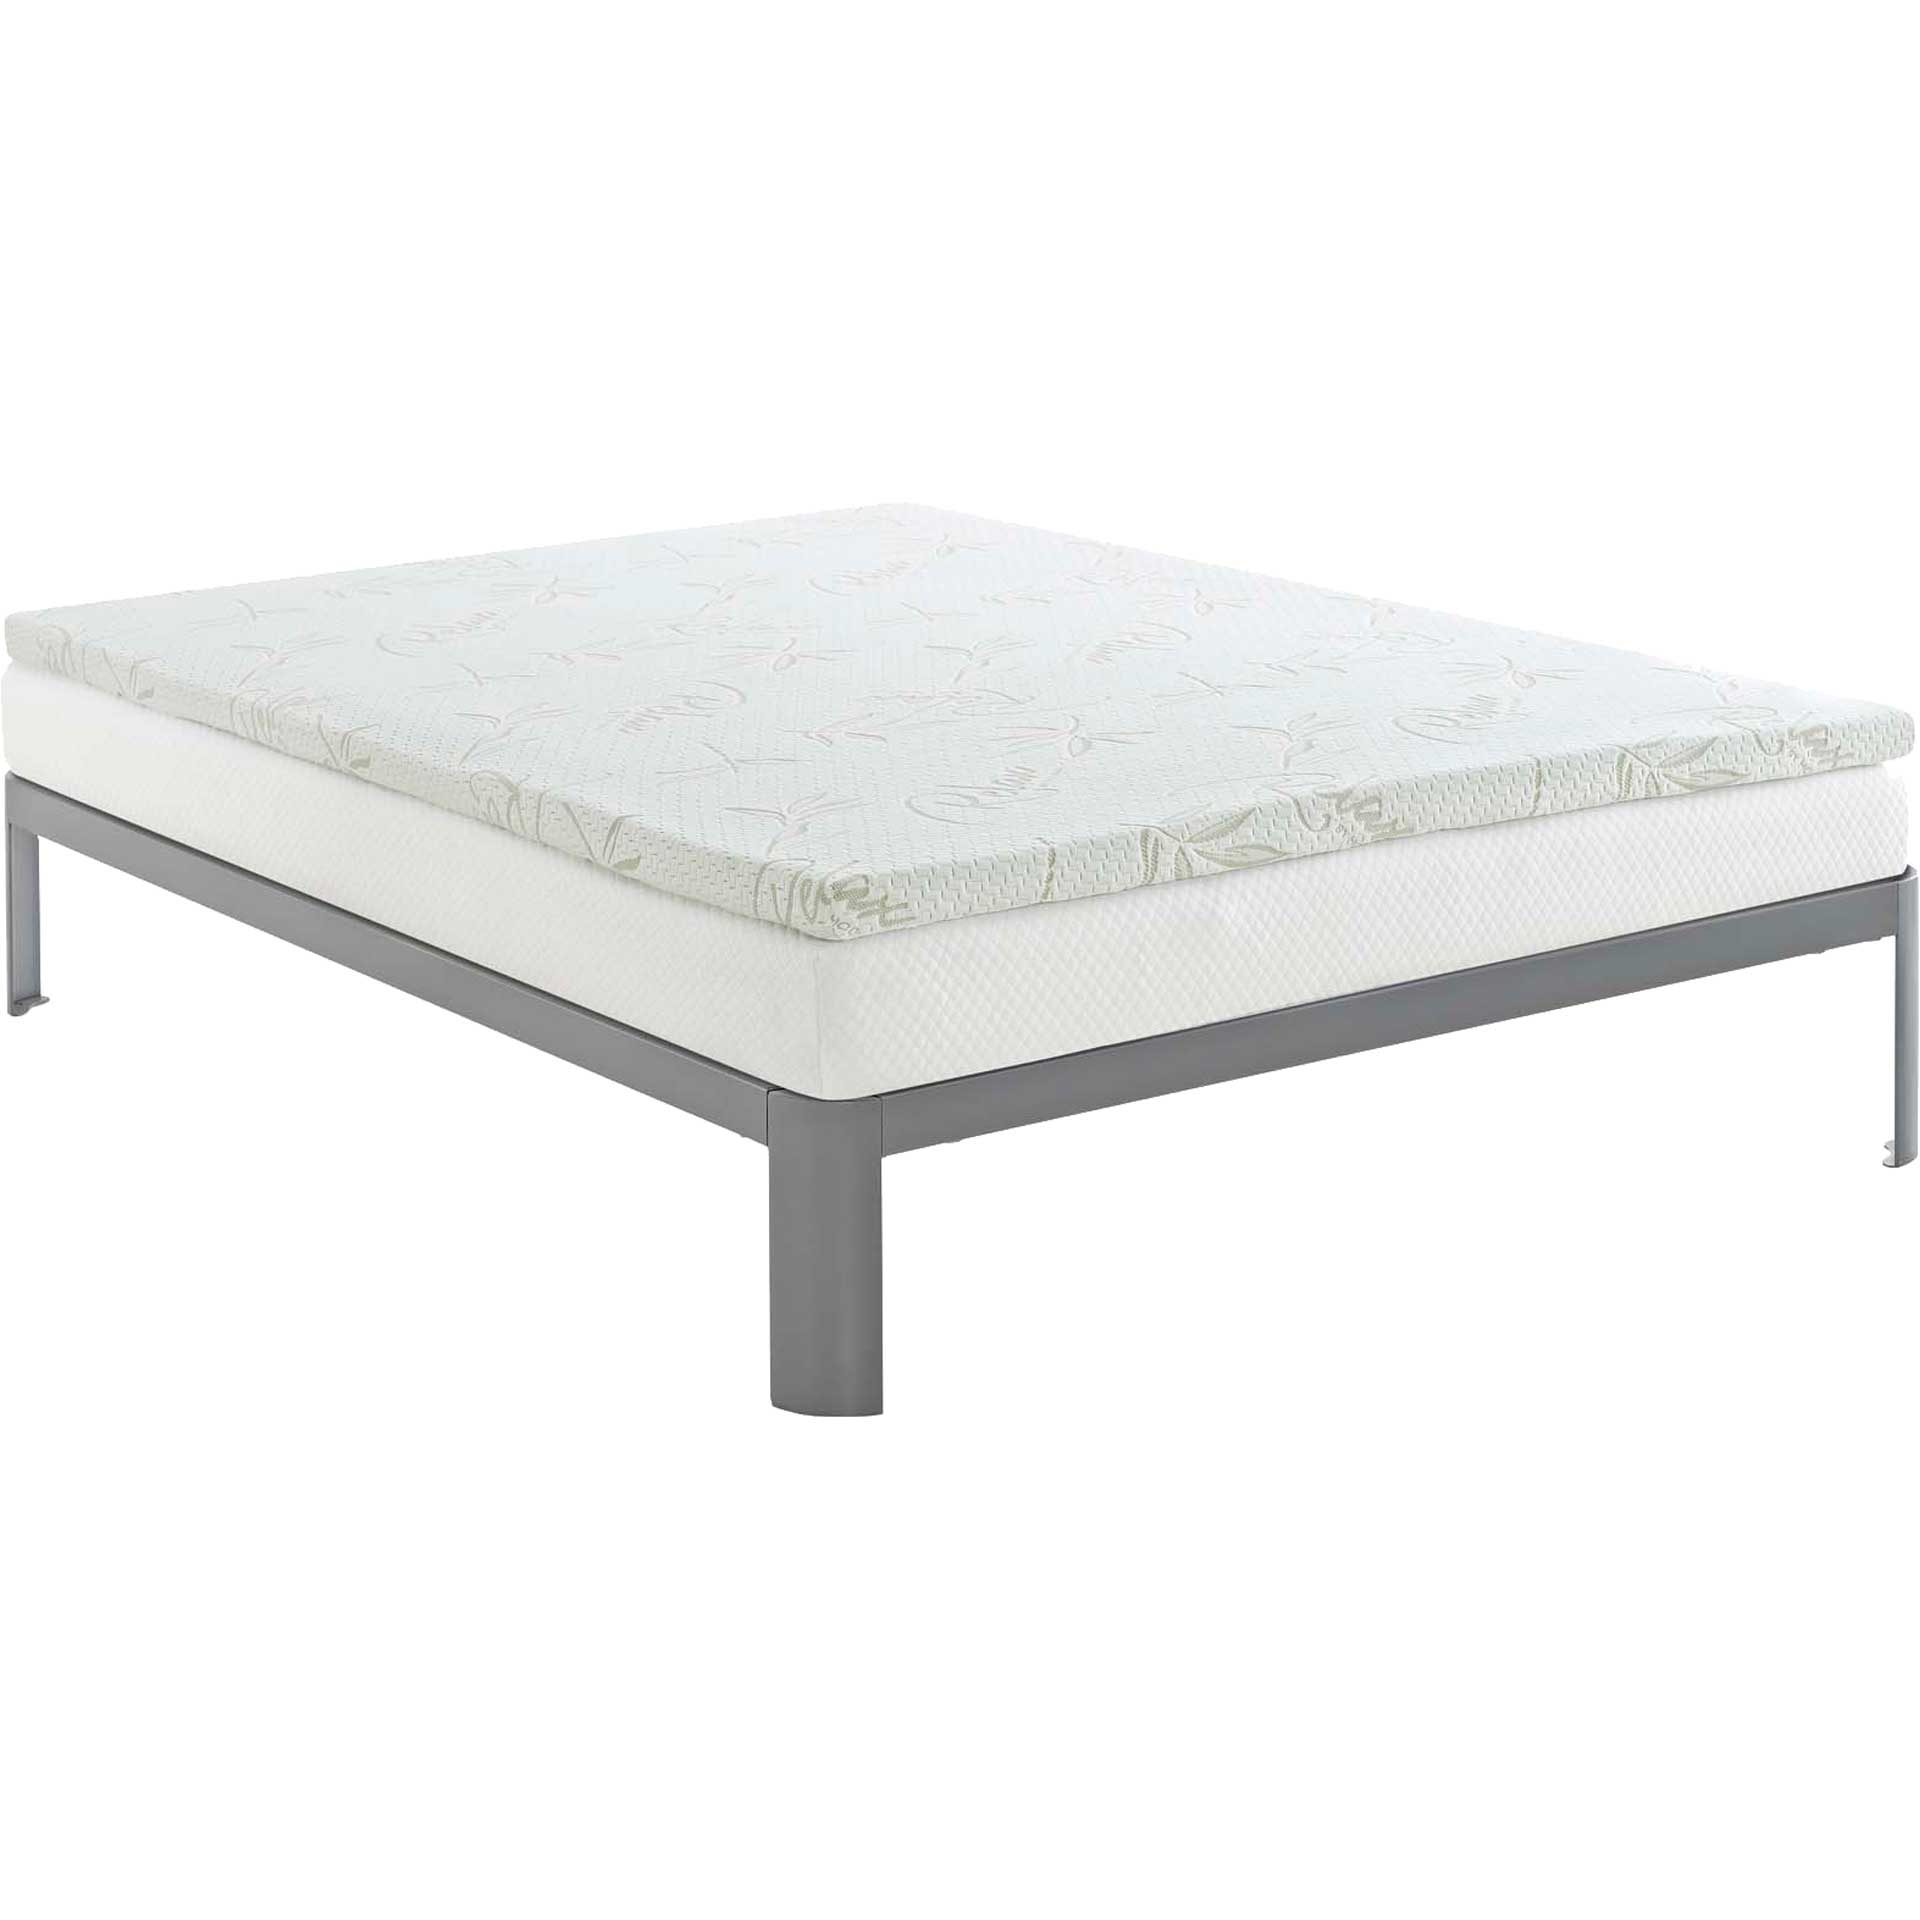 "Relax 2"" Gel Memory Foam Mattress Topper White"